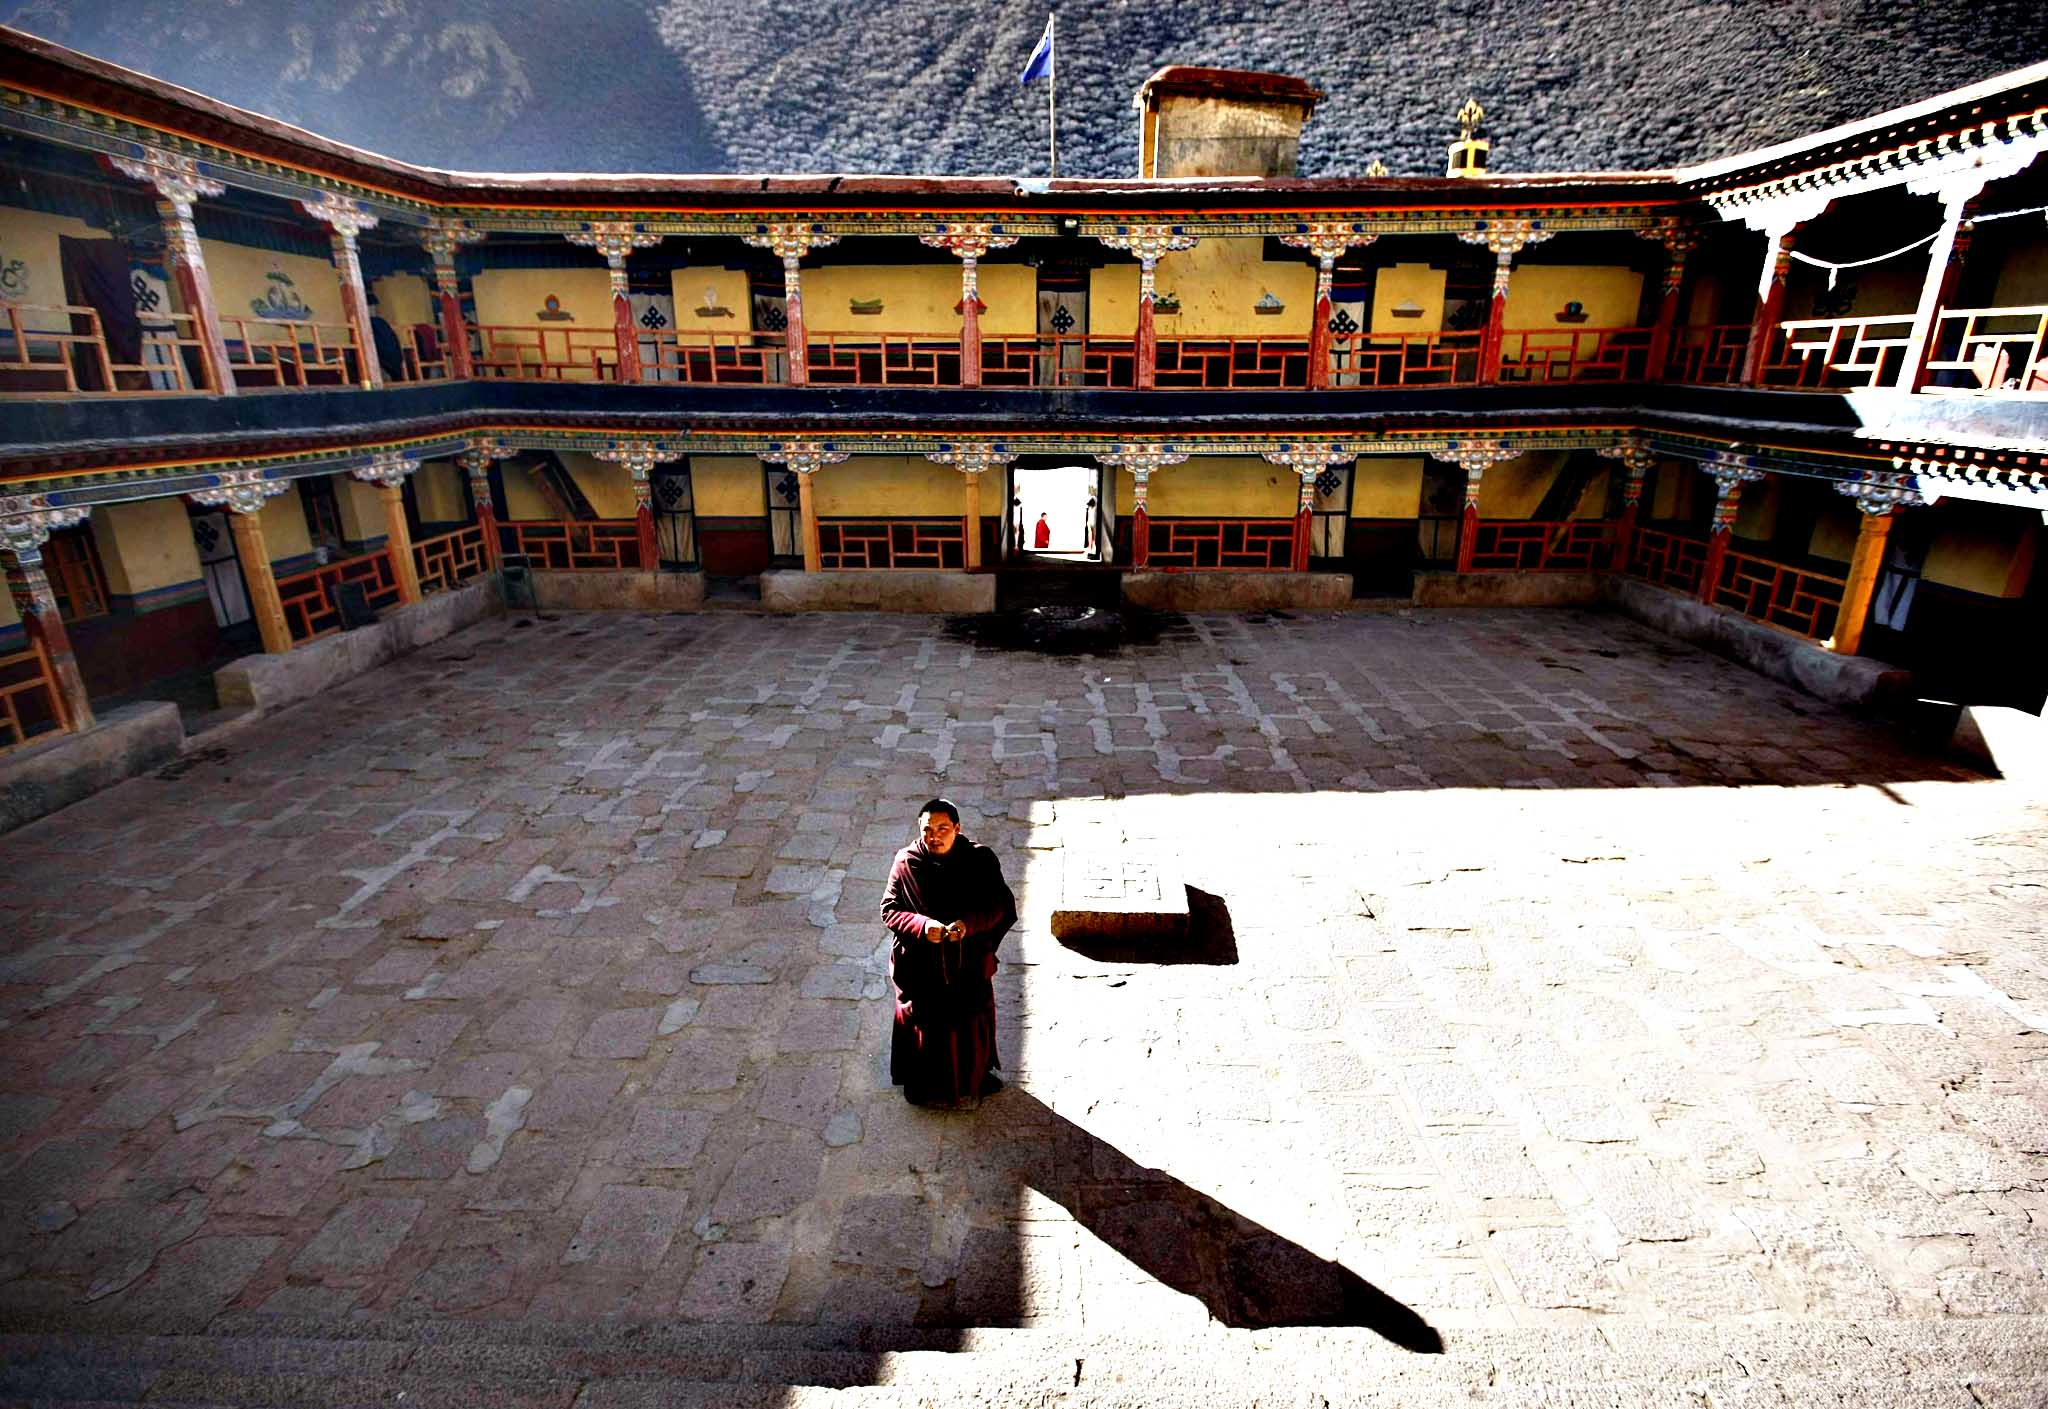 A Tibetan monk stands in the middle of a square at a Tibetan Buddhism school of the Tsurphu Monastery in Doilungdeqen county, Tibet Autonomous Region.